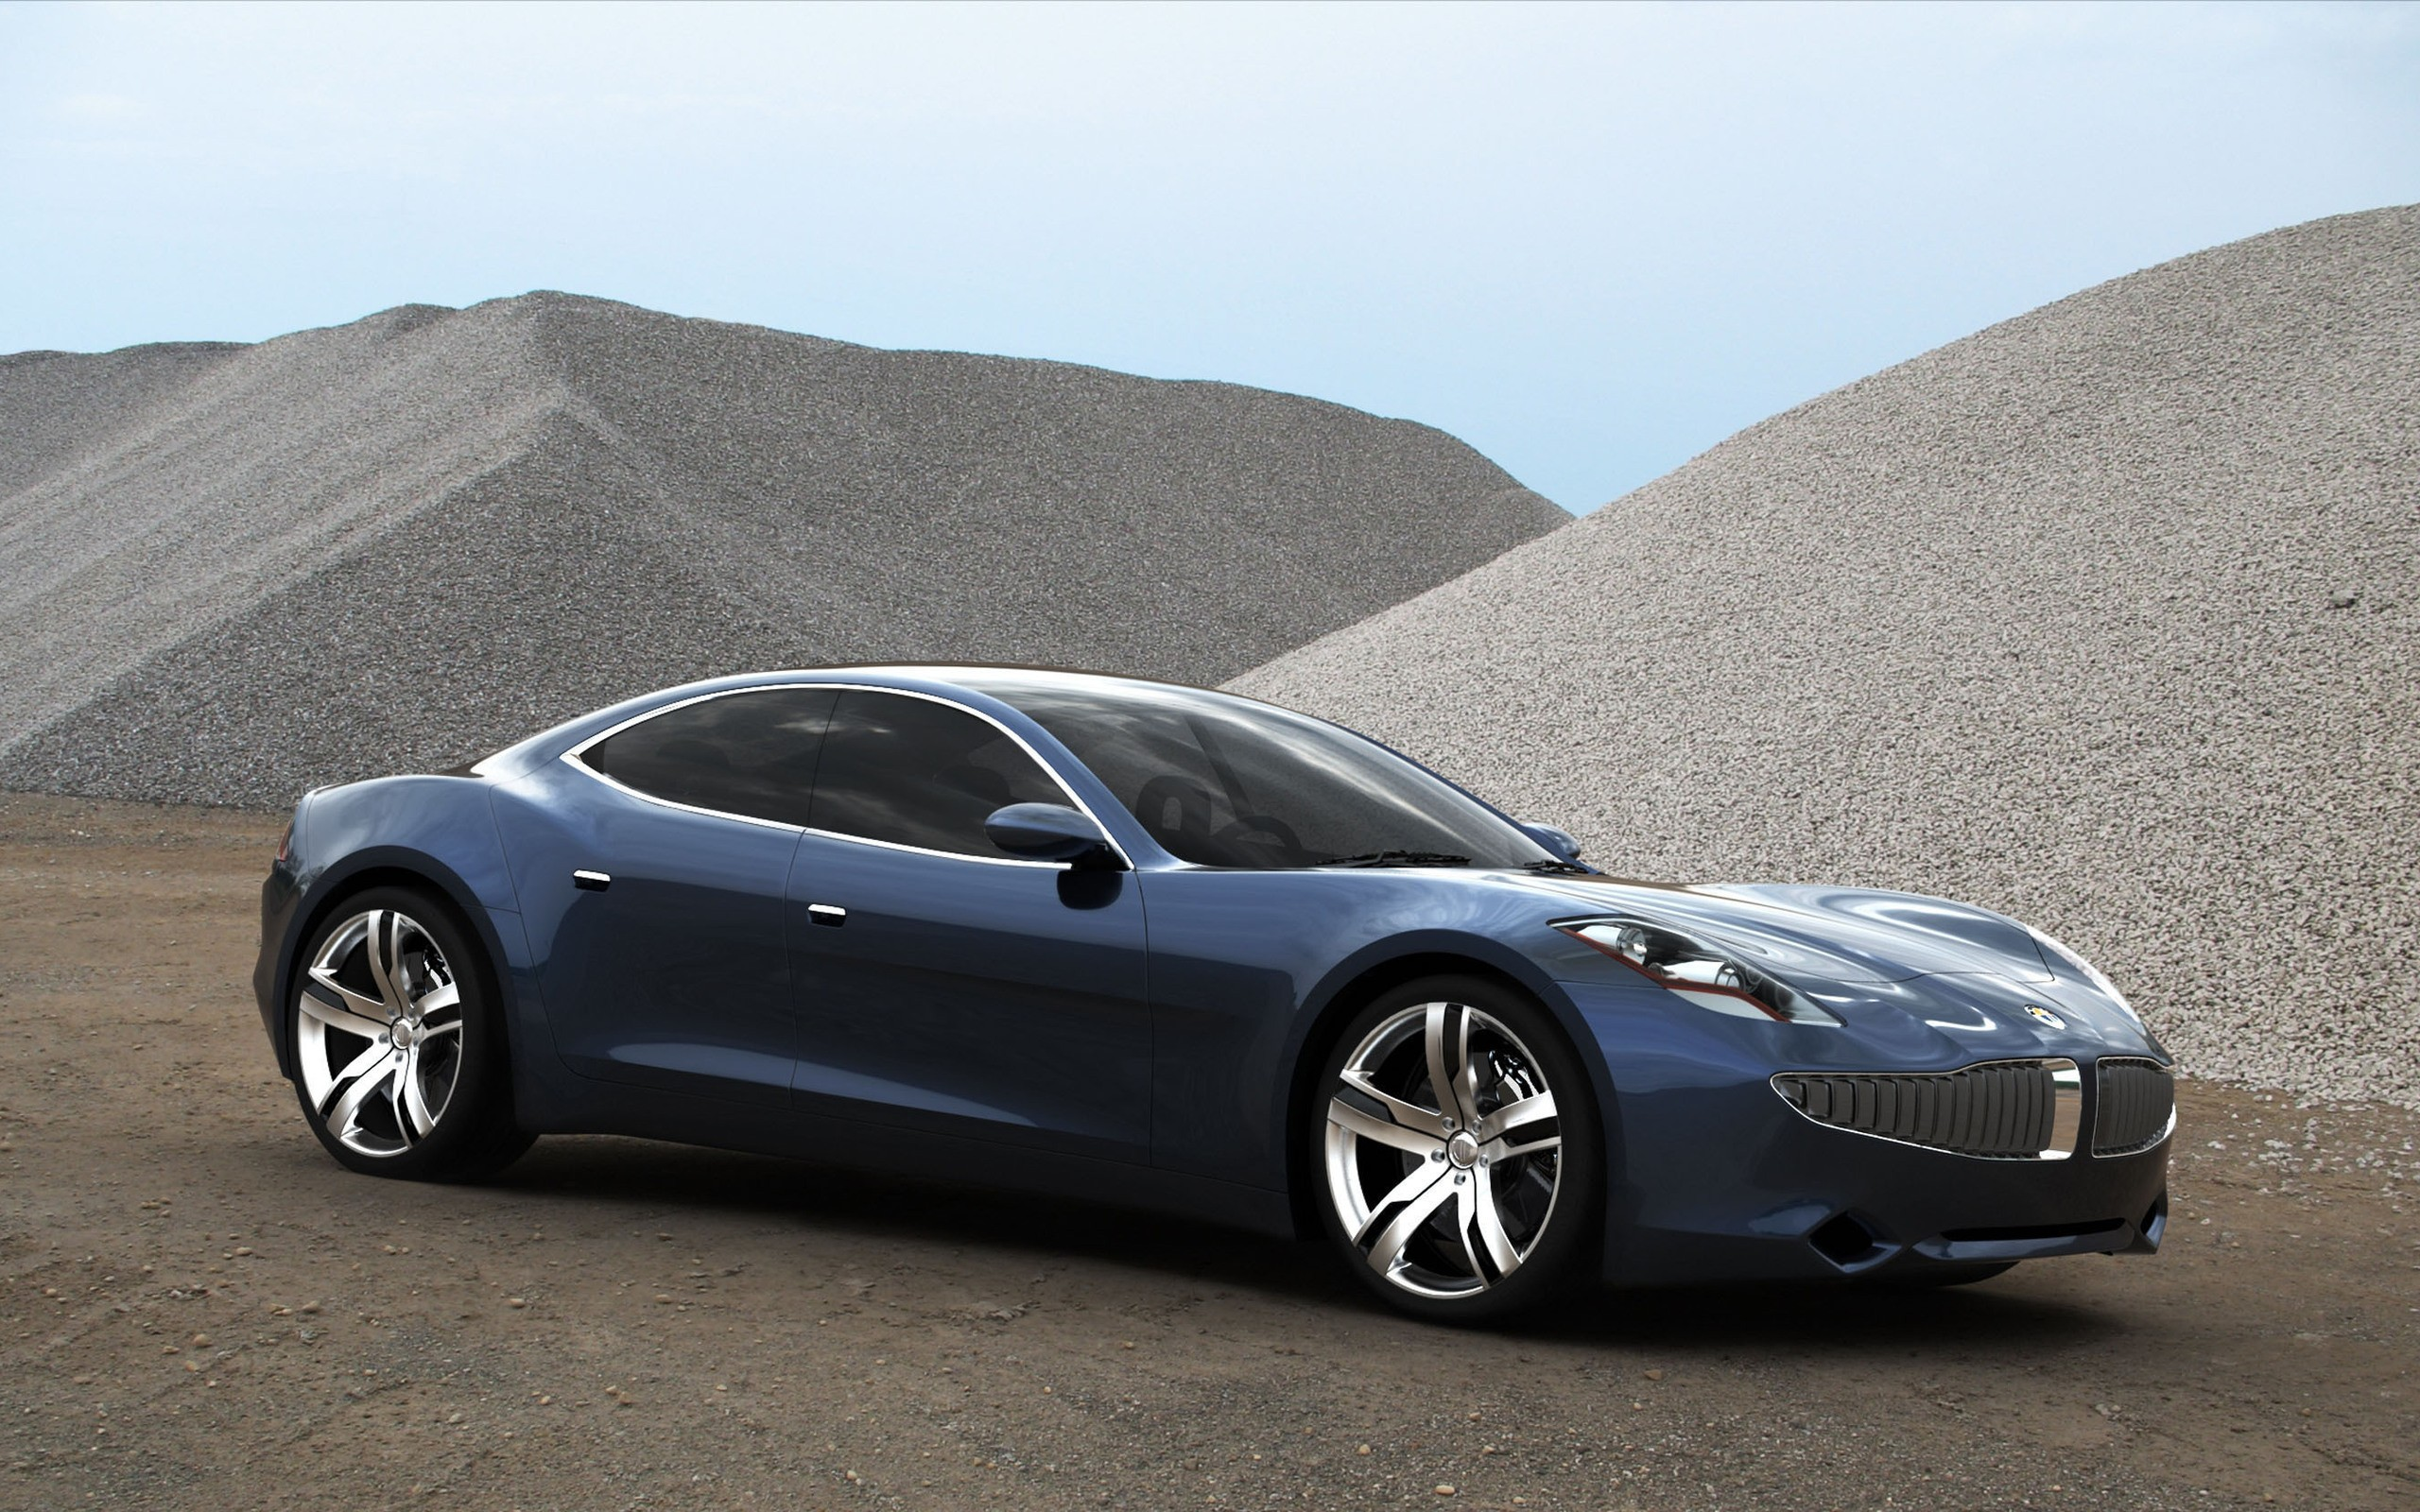 High Quality Image of Fisker Karma – 2560x1600